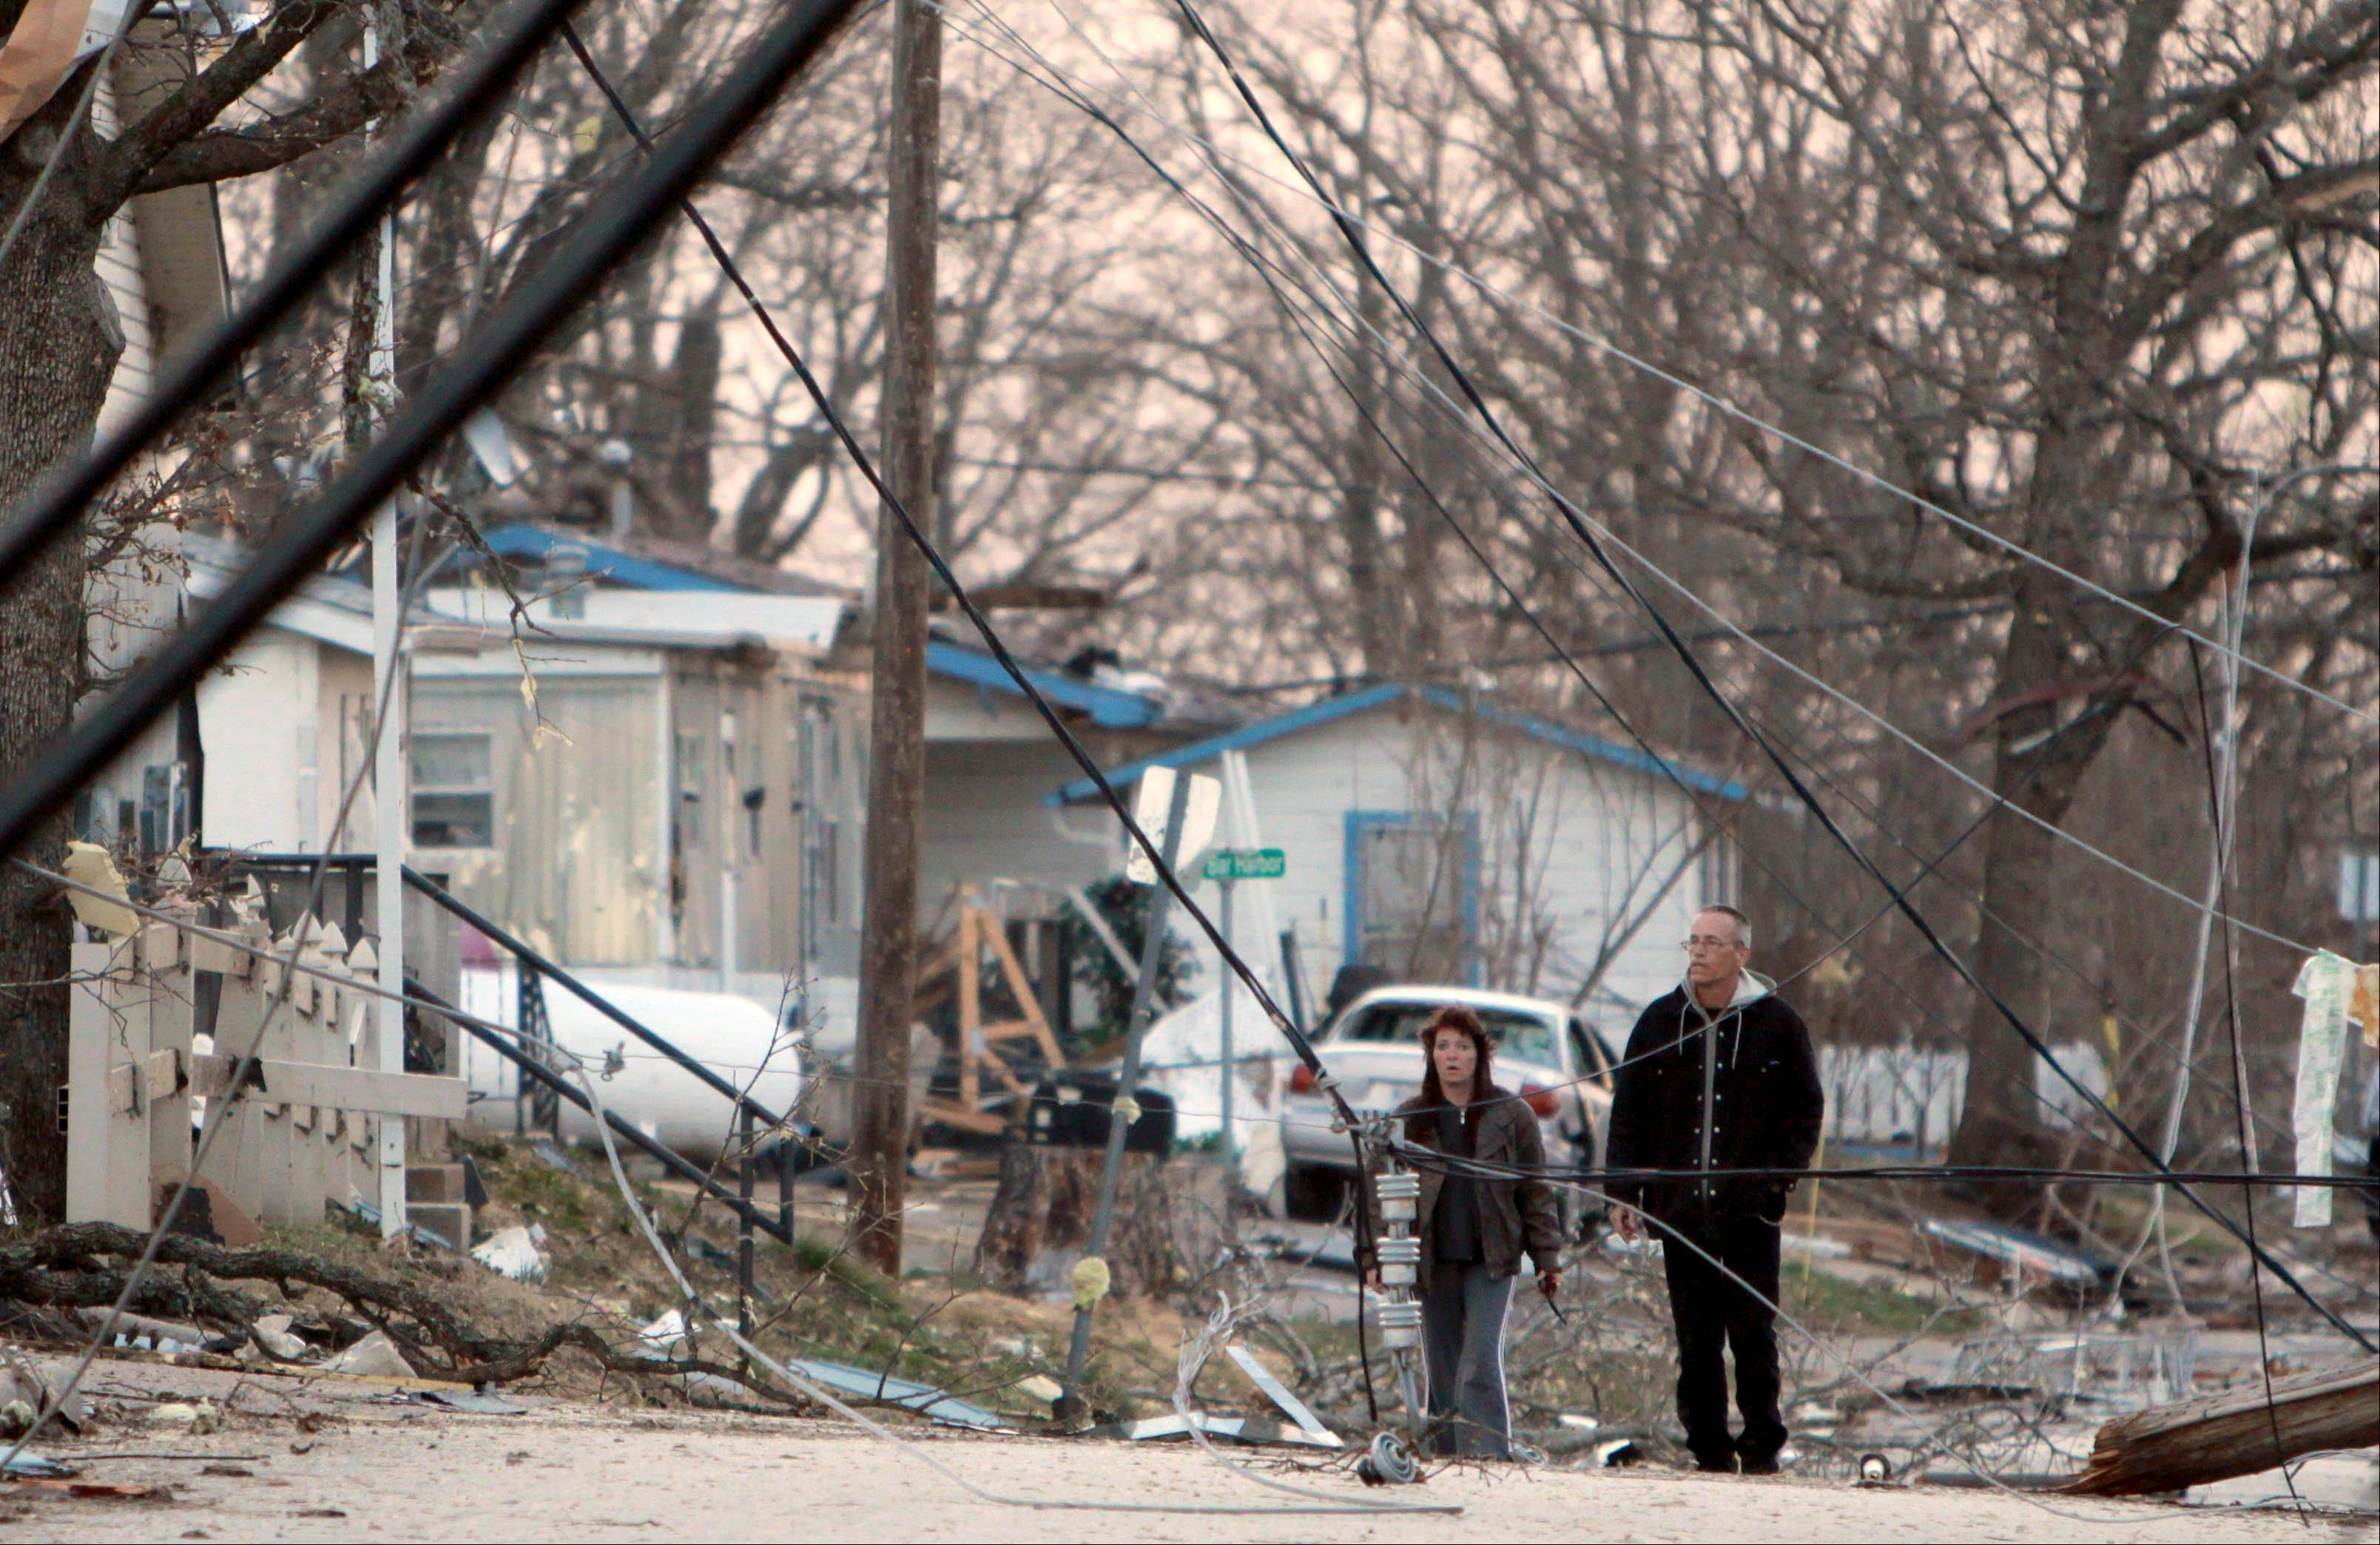 Residents walk amid downed power lines in their neighborhood in Branson, Mo, Wednesday, Feb. 29, 2012. A powerful storm system lashed the Midwest early Wednesday, roughing up the country music resort city of Branson and laying waste to a small town in Kansas.